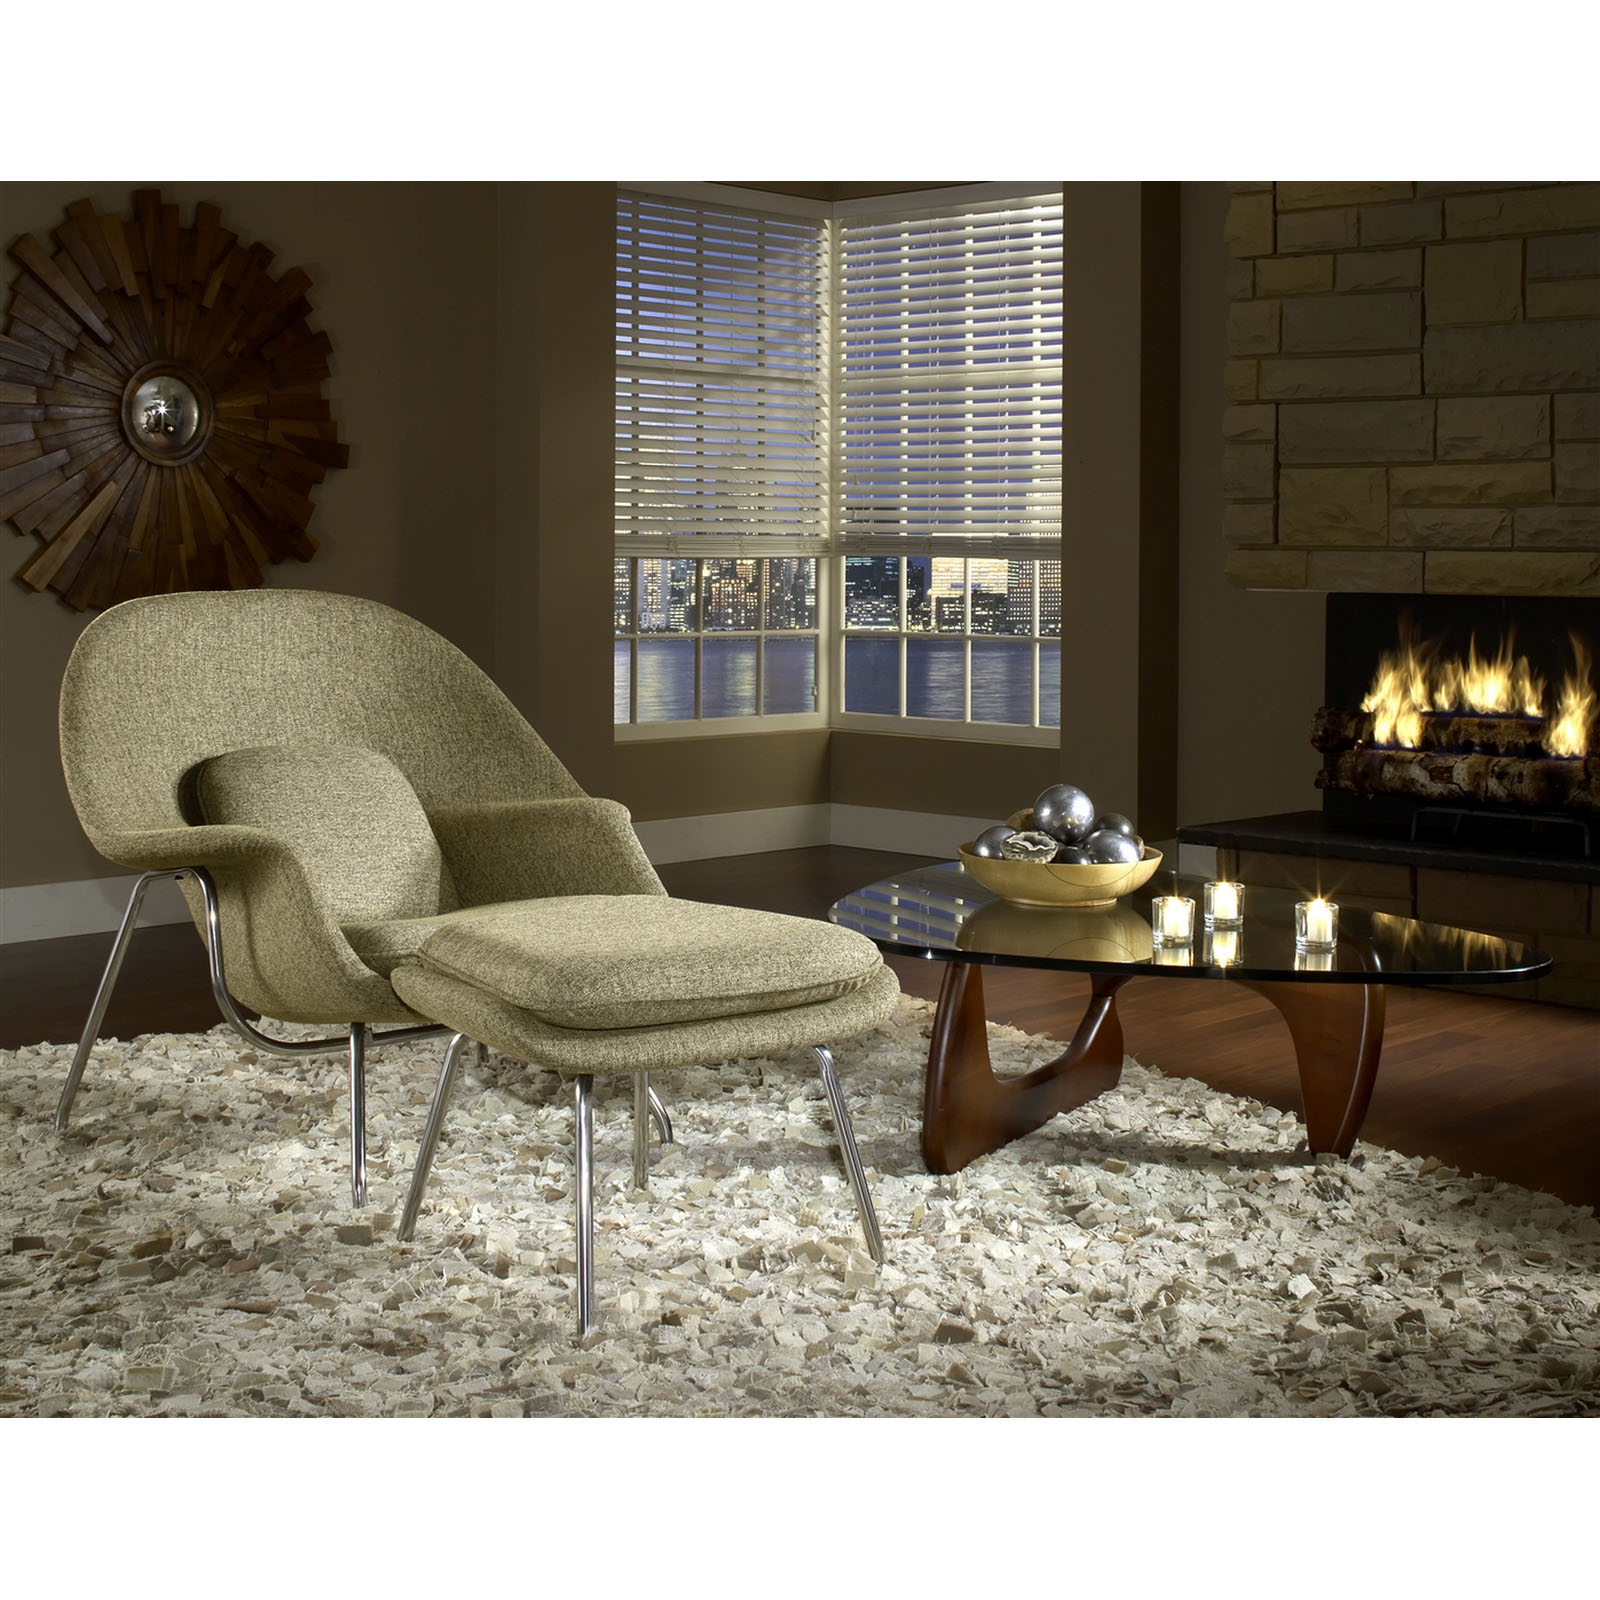 Modway 3-Piece Living Room Chair, Ottoman and Table Set in Oatmeal